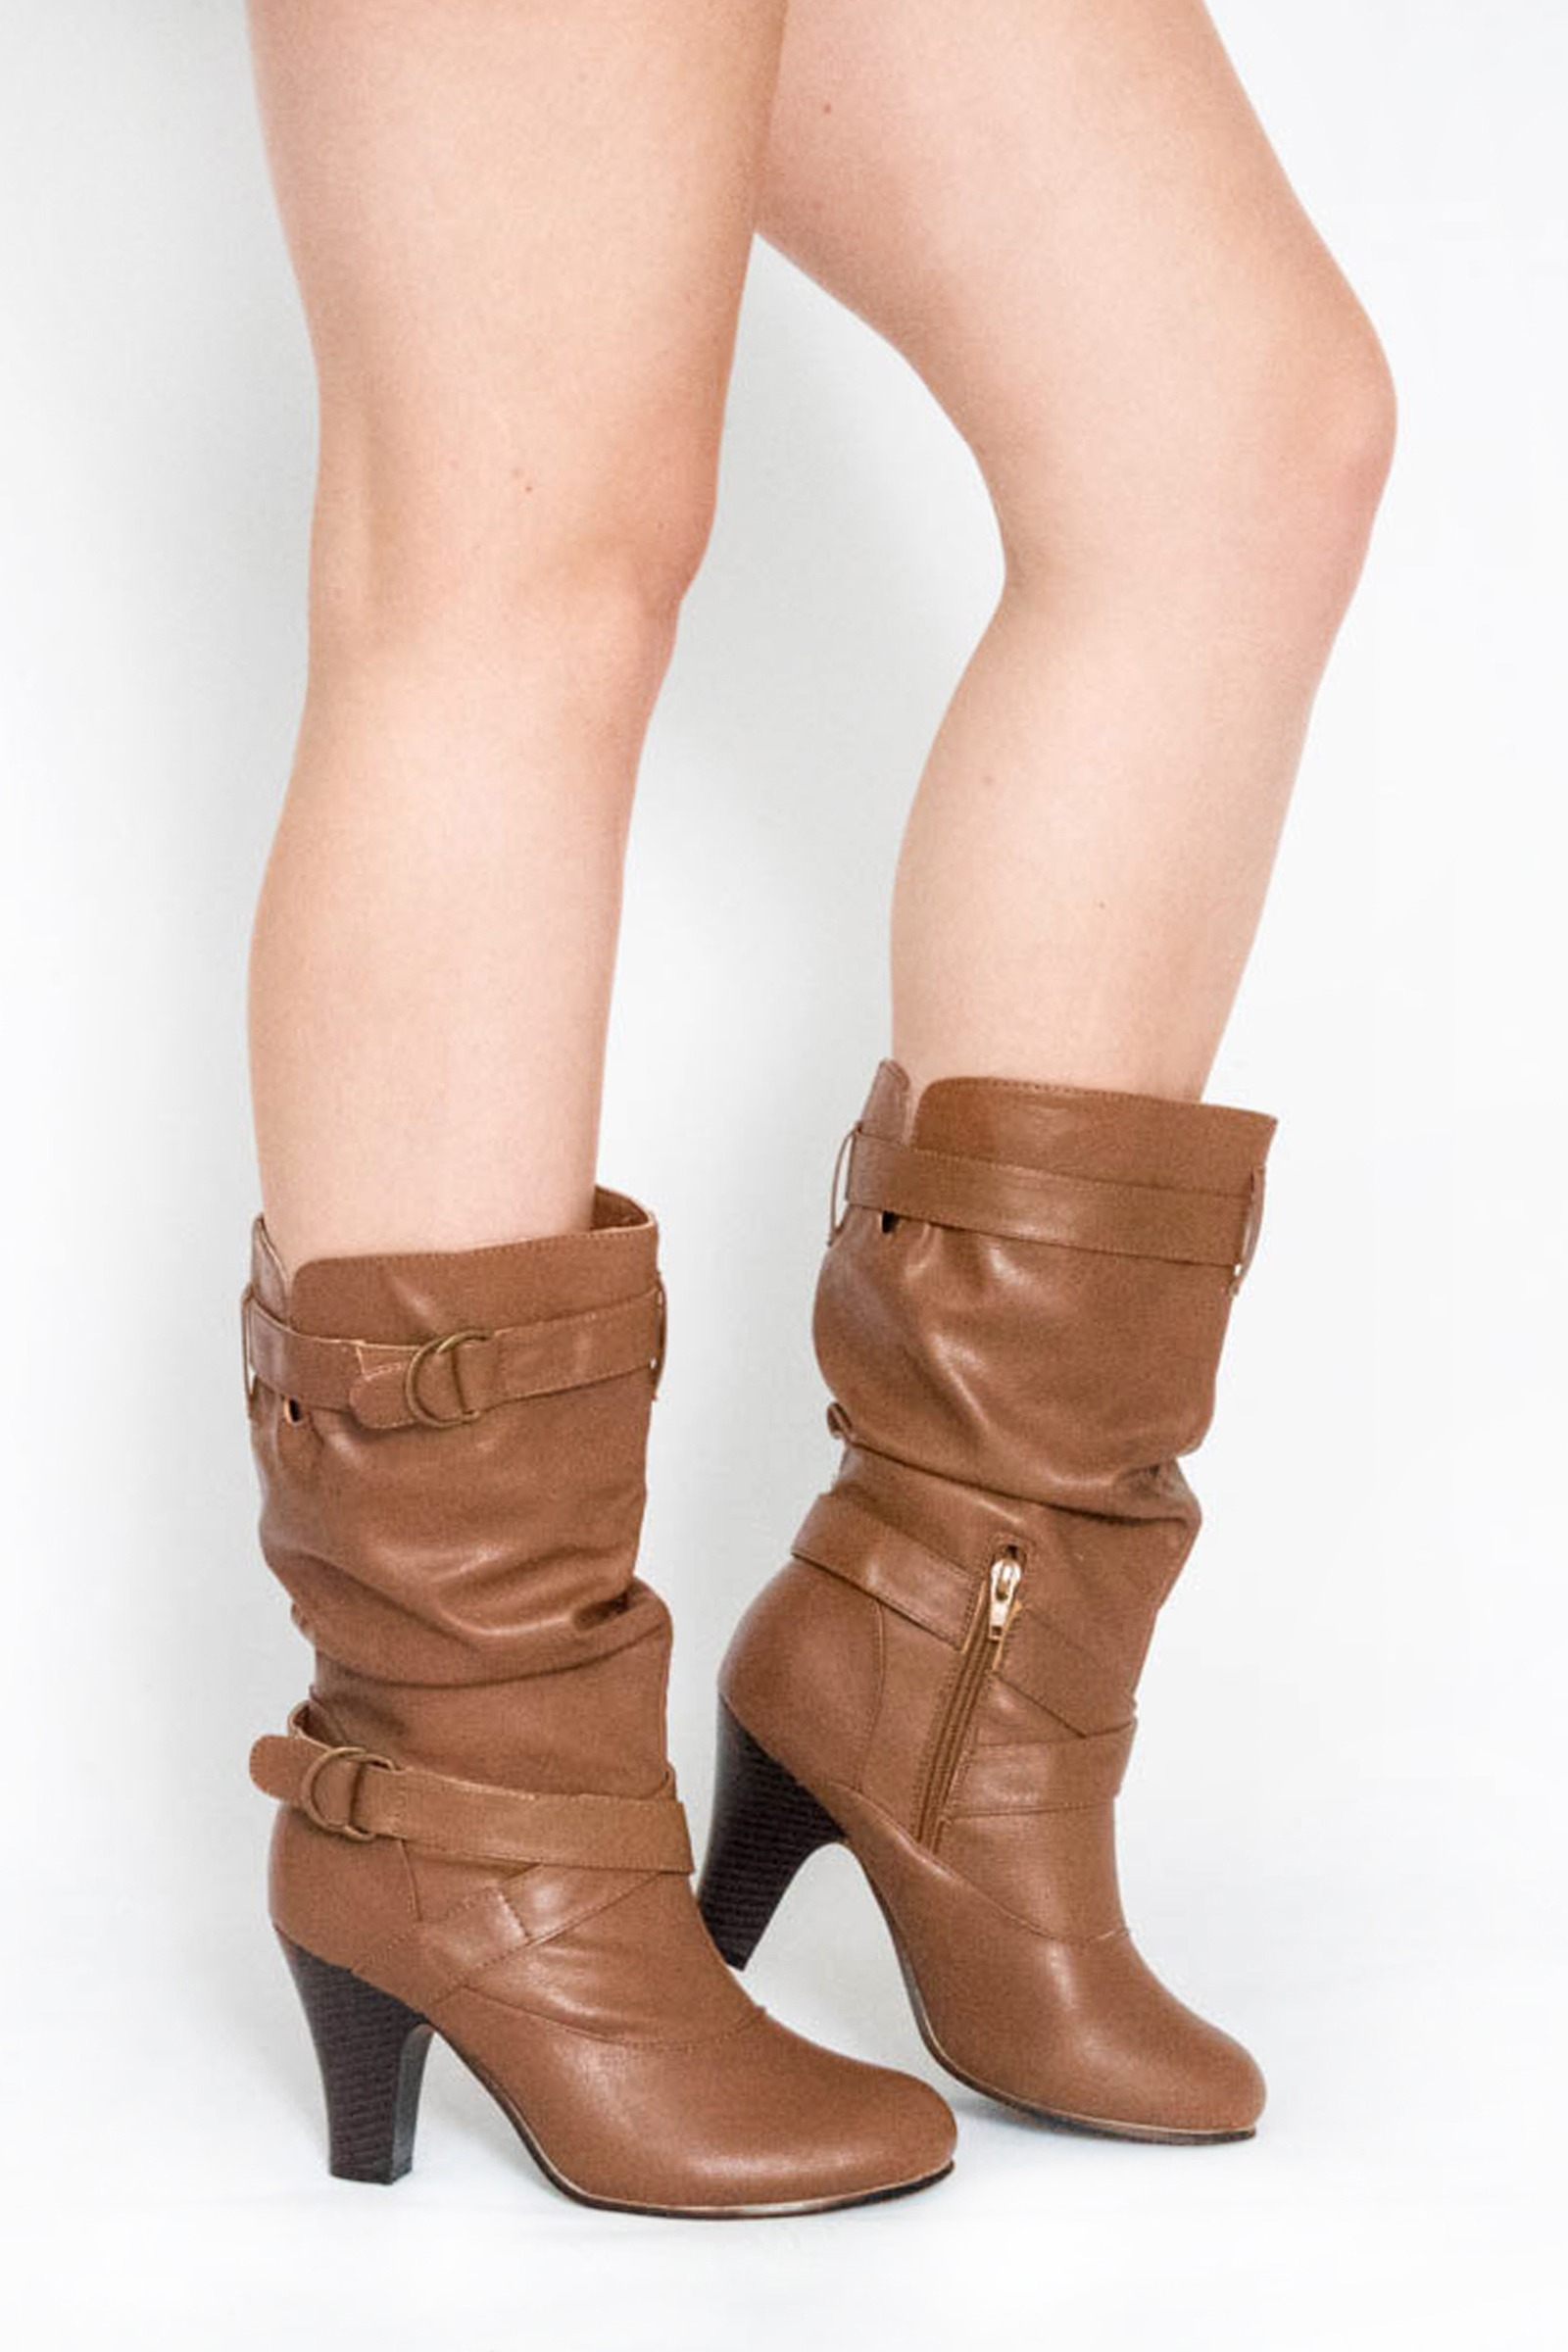 slouch tan mid calf boots